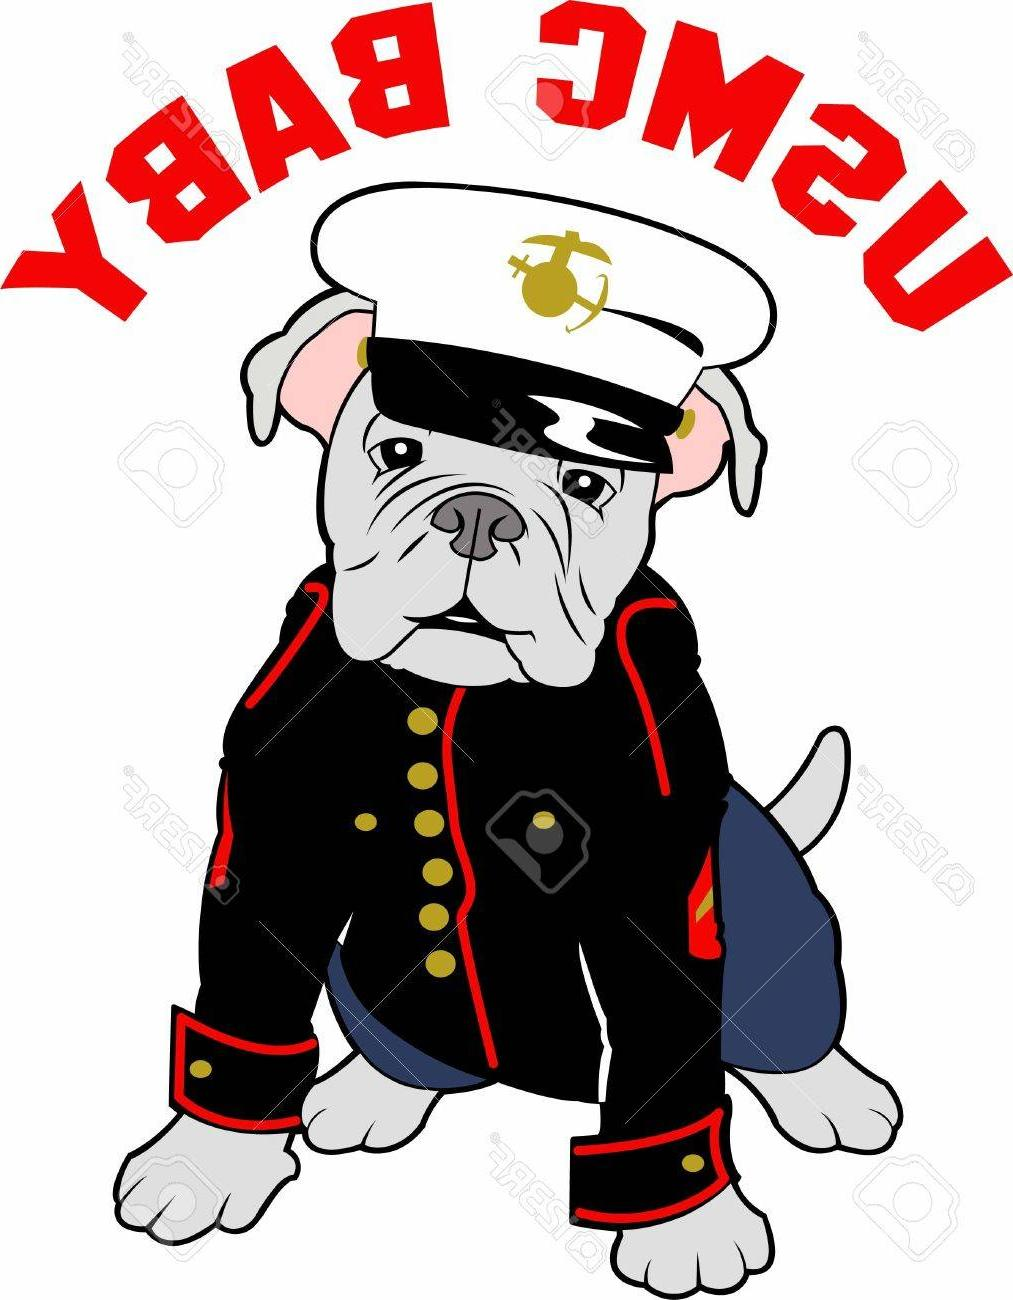 1013x1300 Top 10 Marines Can Show Their Pride With Bulldog Mascot Stock